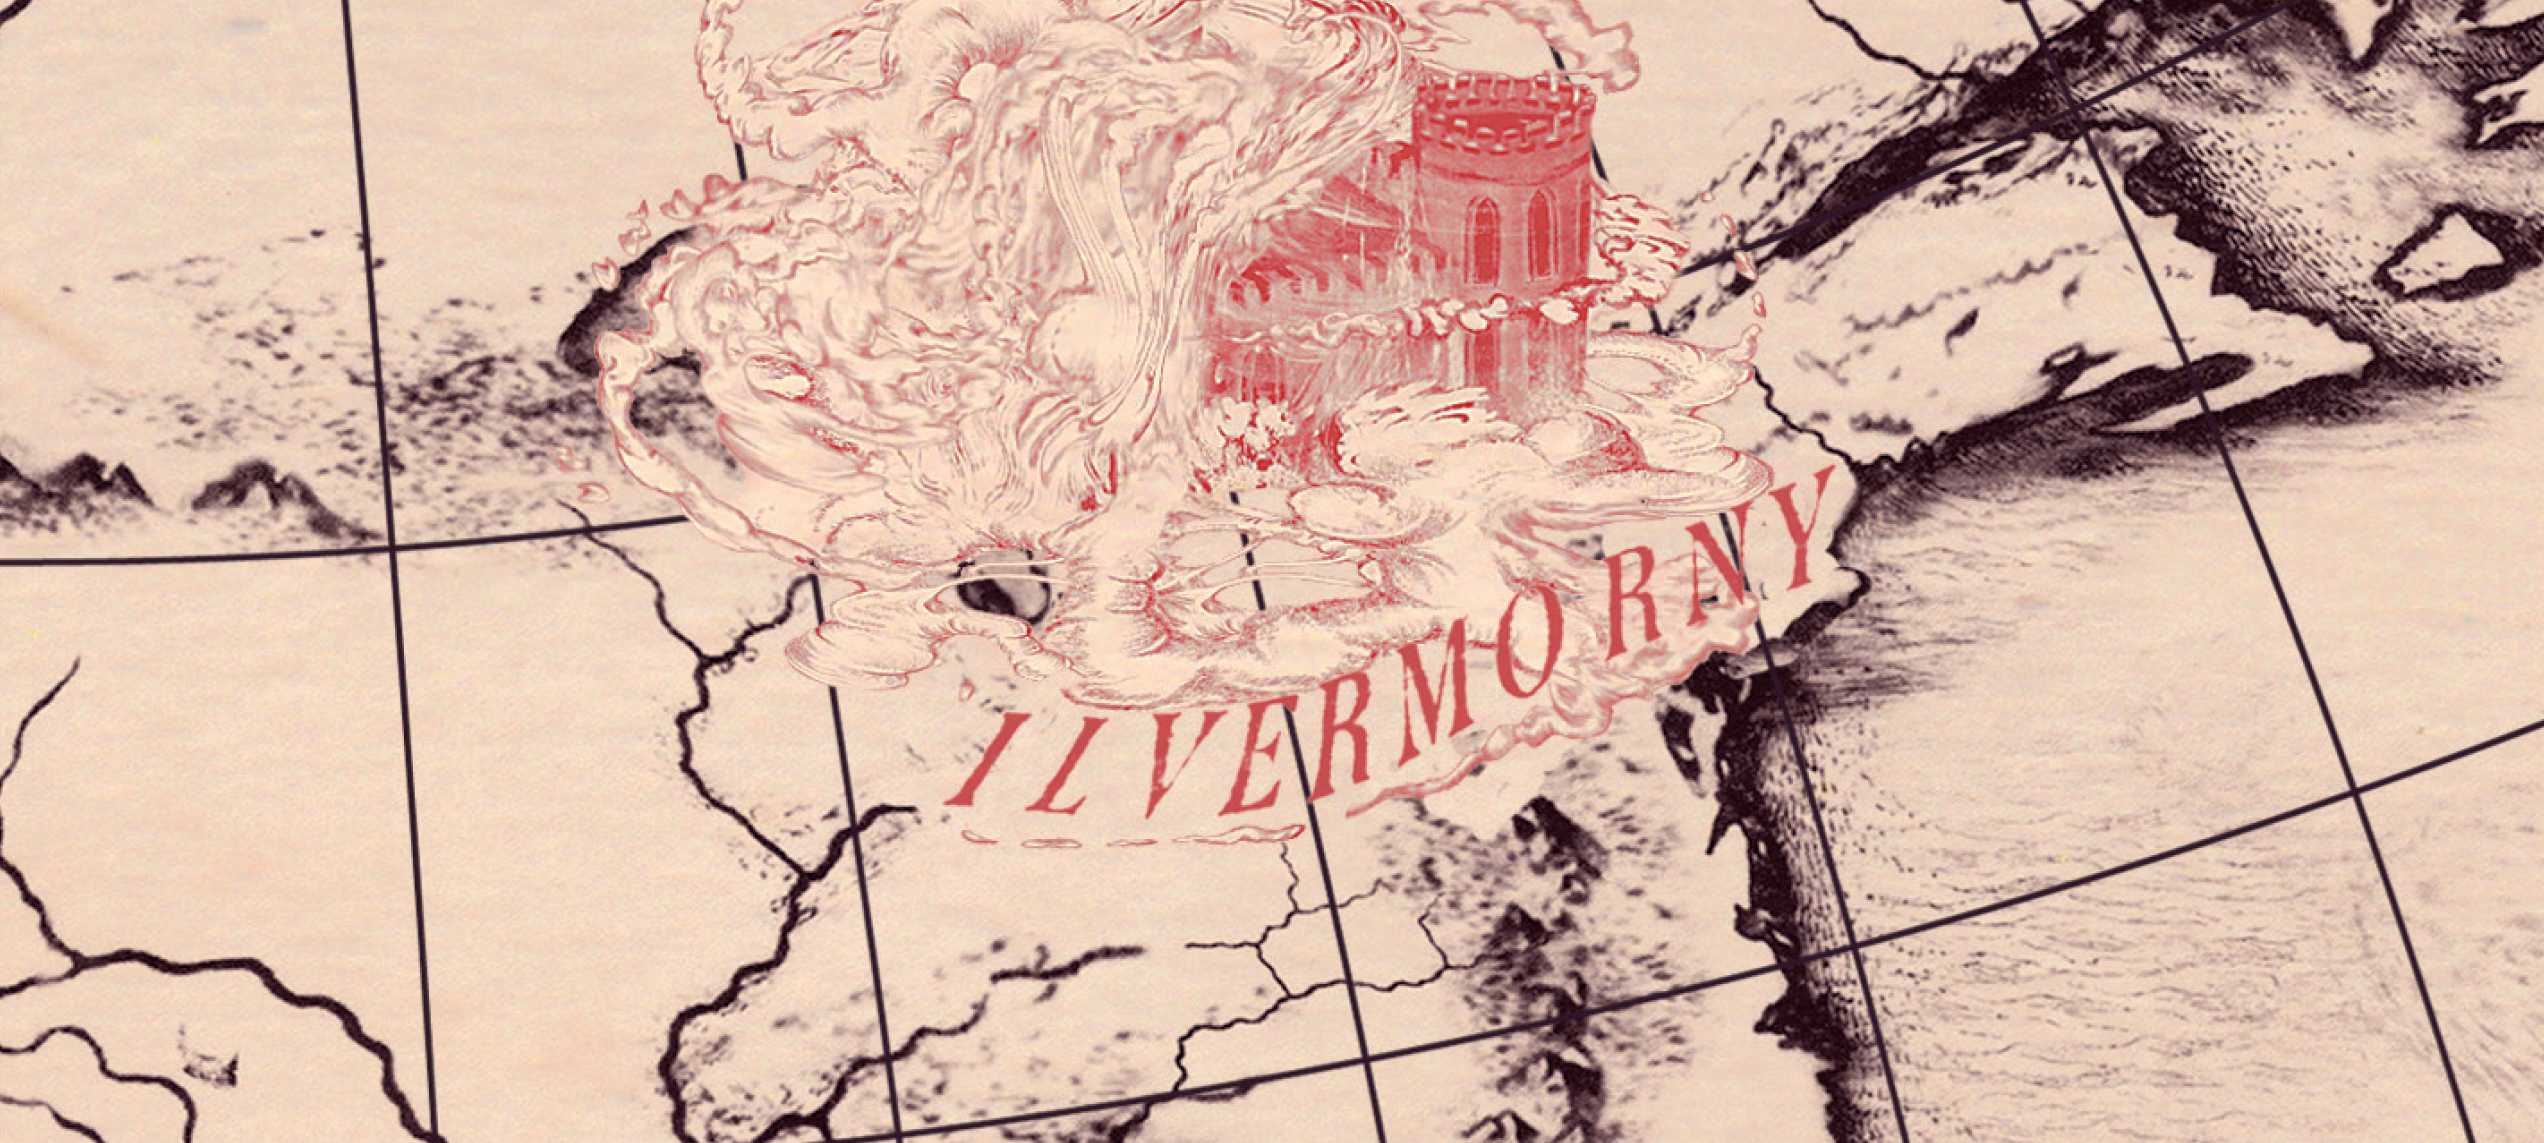 Ilvermorny Wizarding Map News Hub